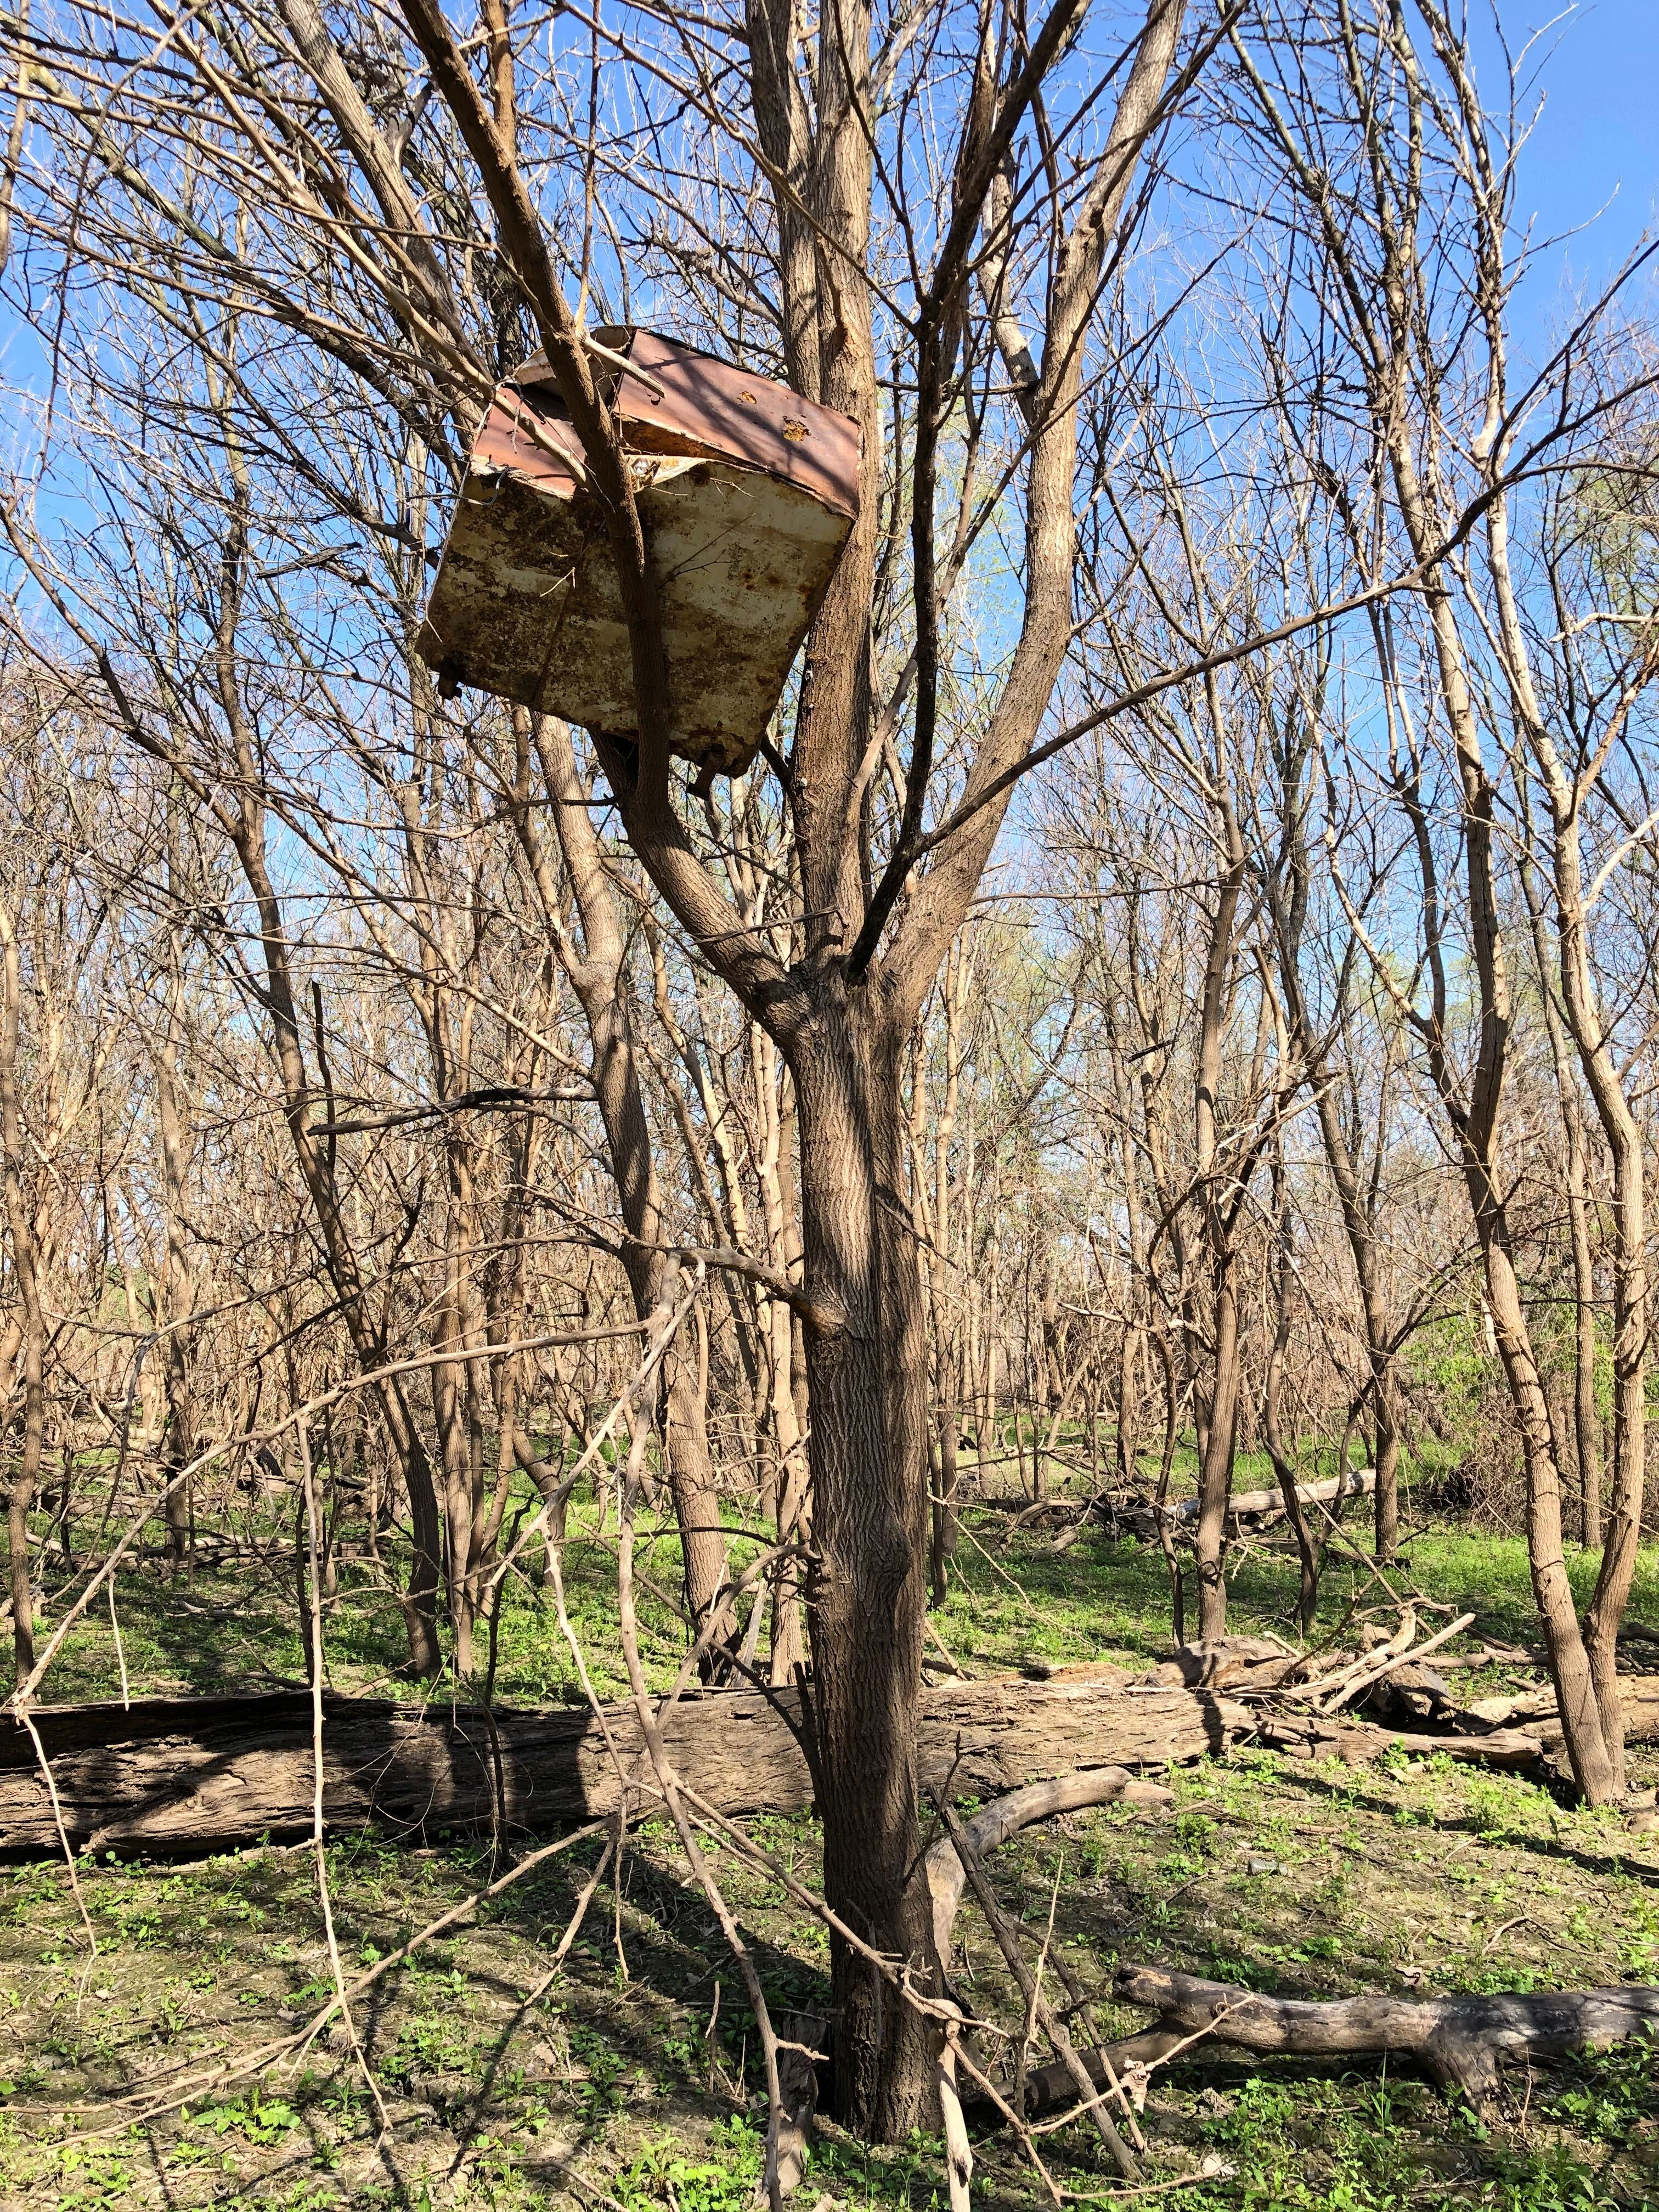 A chest freezer suspended in a tree 20 feet in the air.